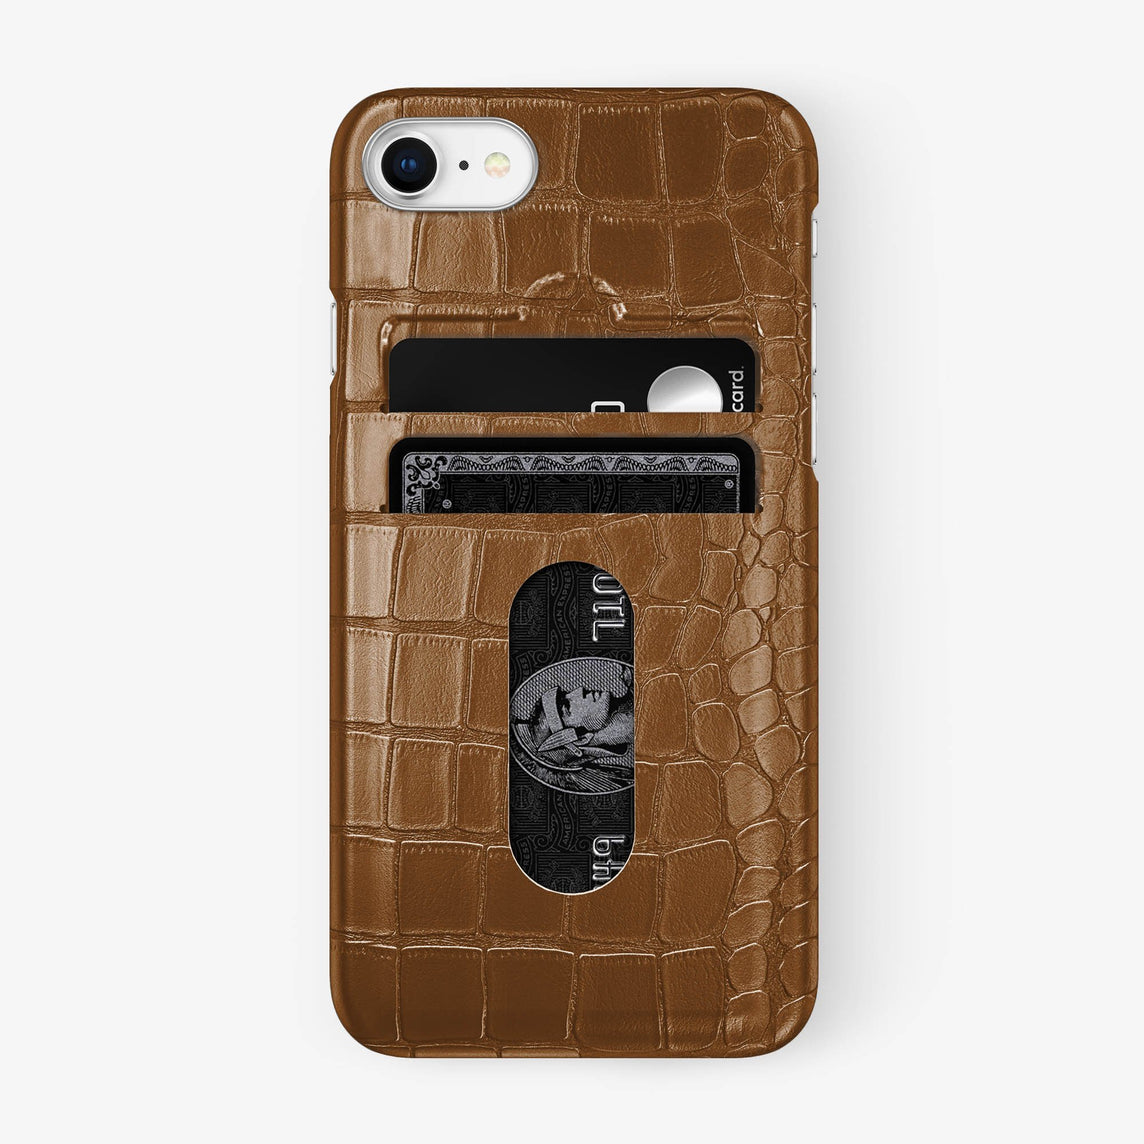 Alligator Card Holder Case iPhone 7/8 | Cognac - Stainless Steel - Hadoro